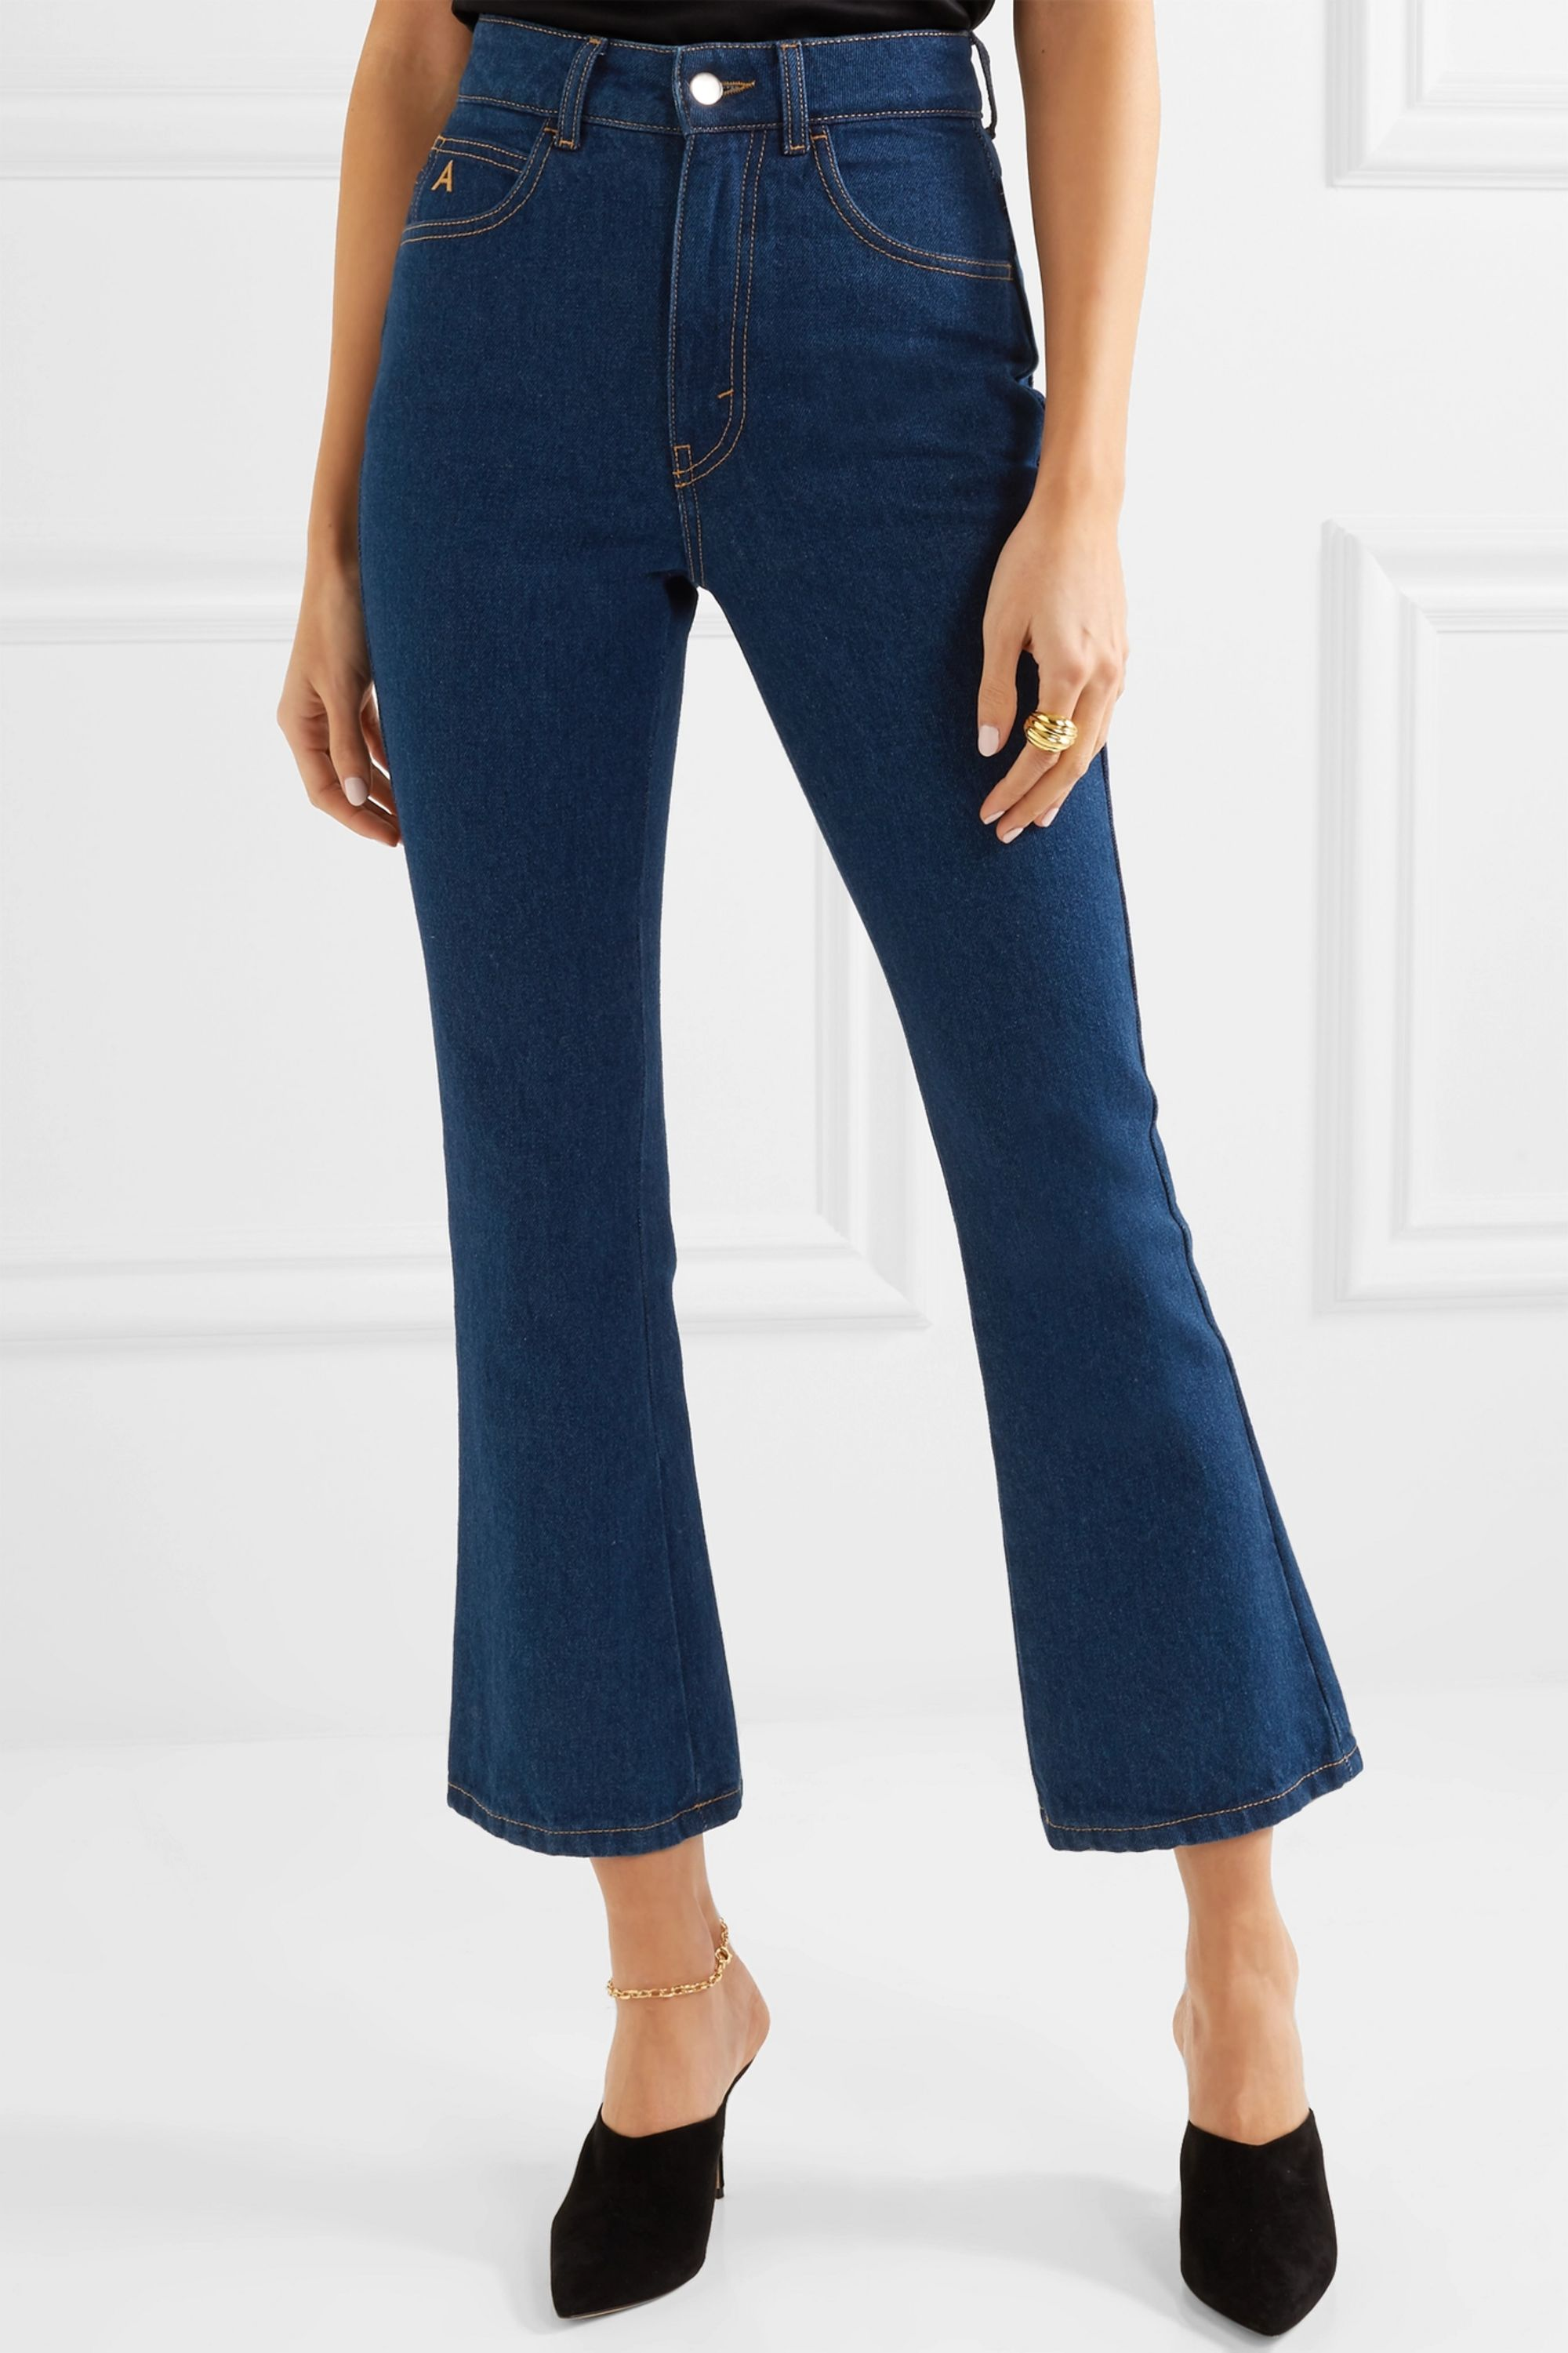 The Attico Cropped high-rise flared jeans